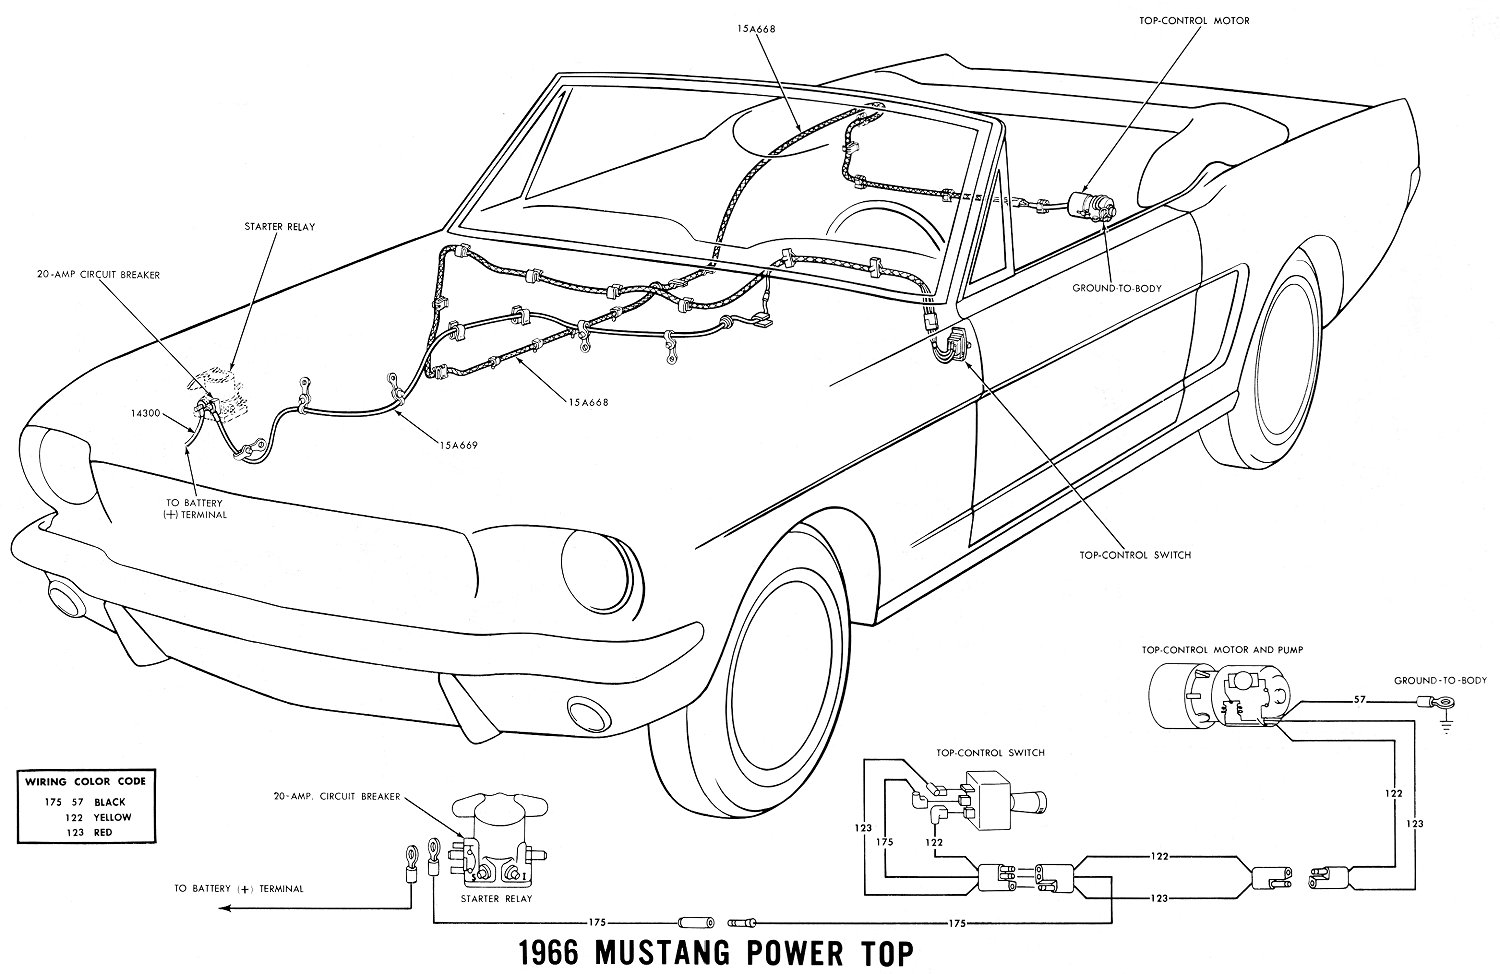 Vintage Mustang Wiring Diagrams Ford 289 Engine And Transmission Assembly Diagram 66 Power Convertible Top Details